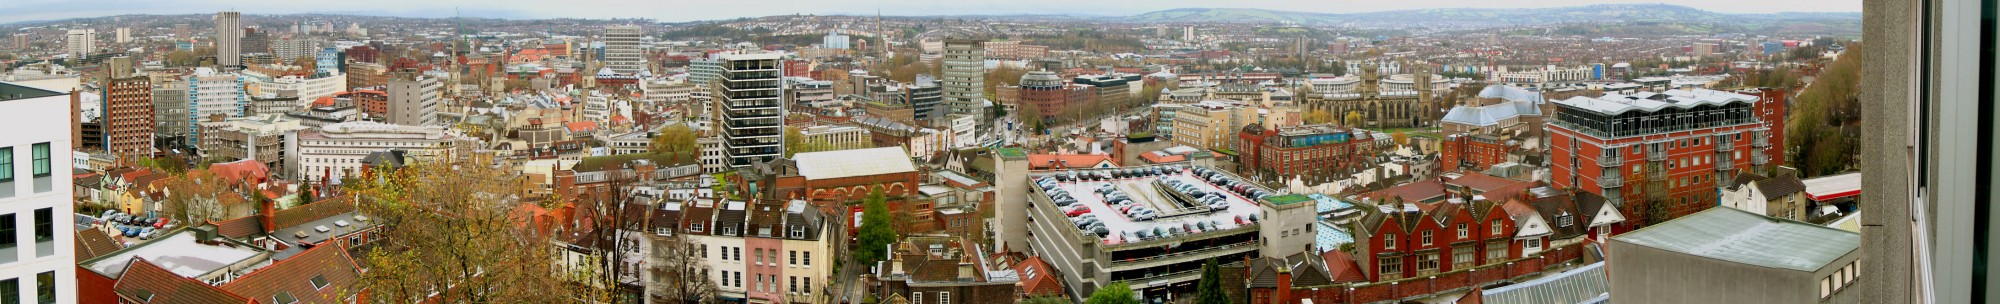 Panorama of Bristol